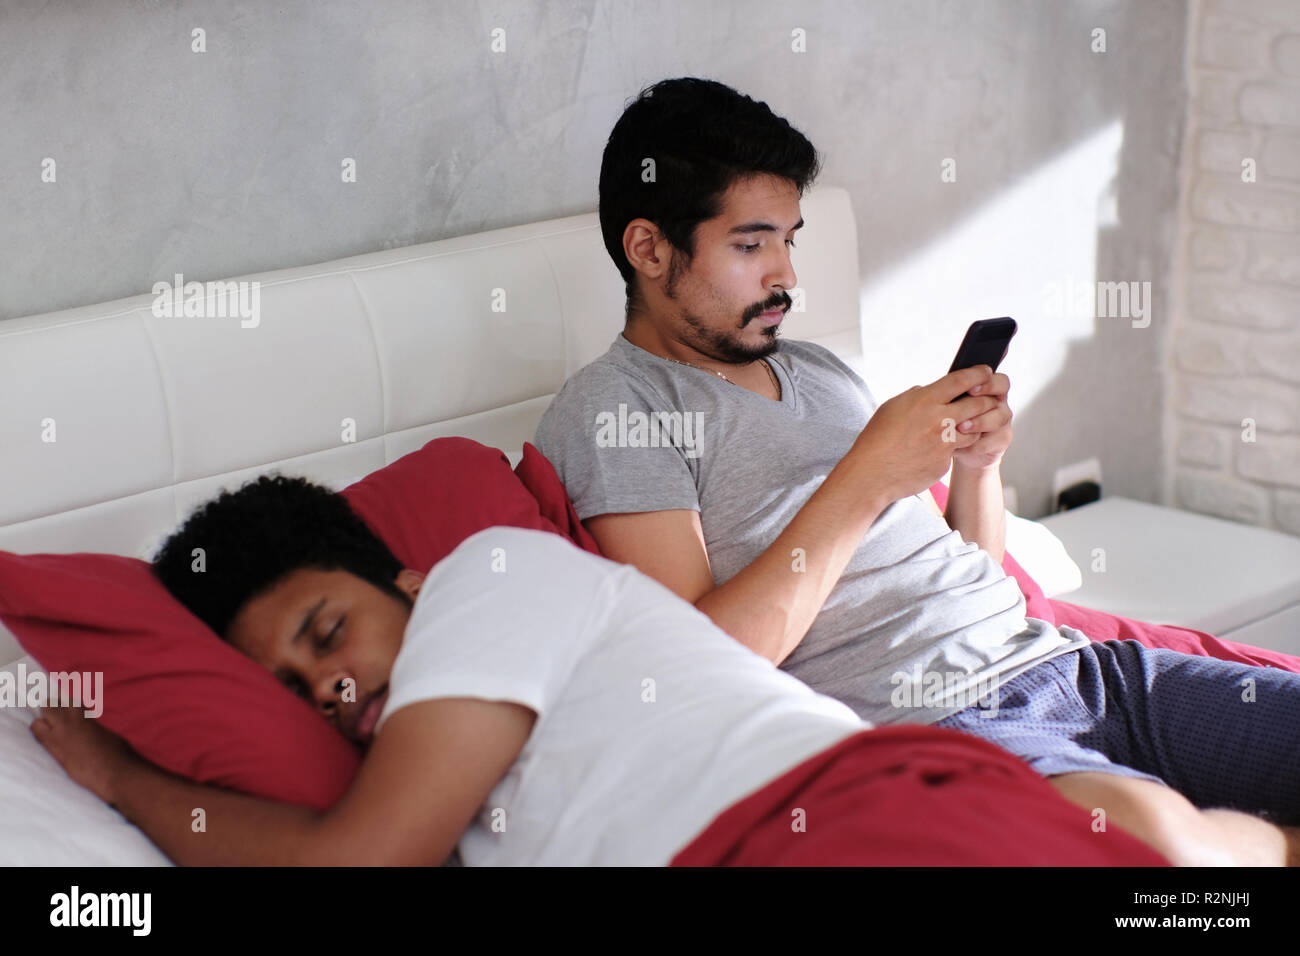 Homosexual couple, gay people. Man being unfaithful and texting with lover while his partner is sleeping in bed - Stock Image